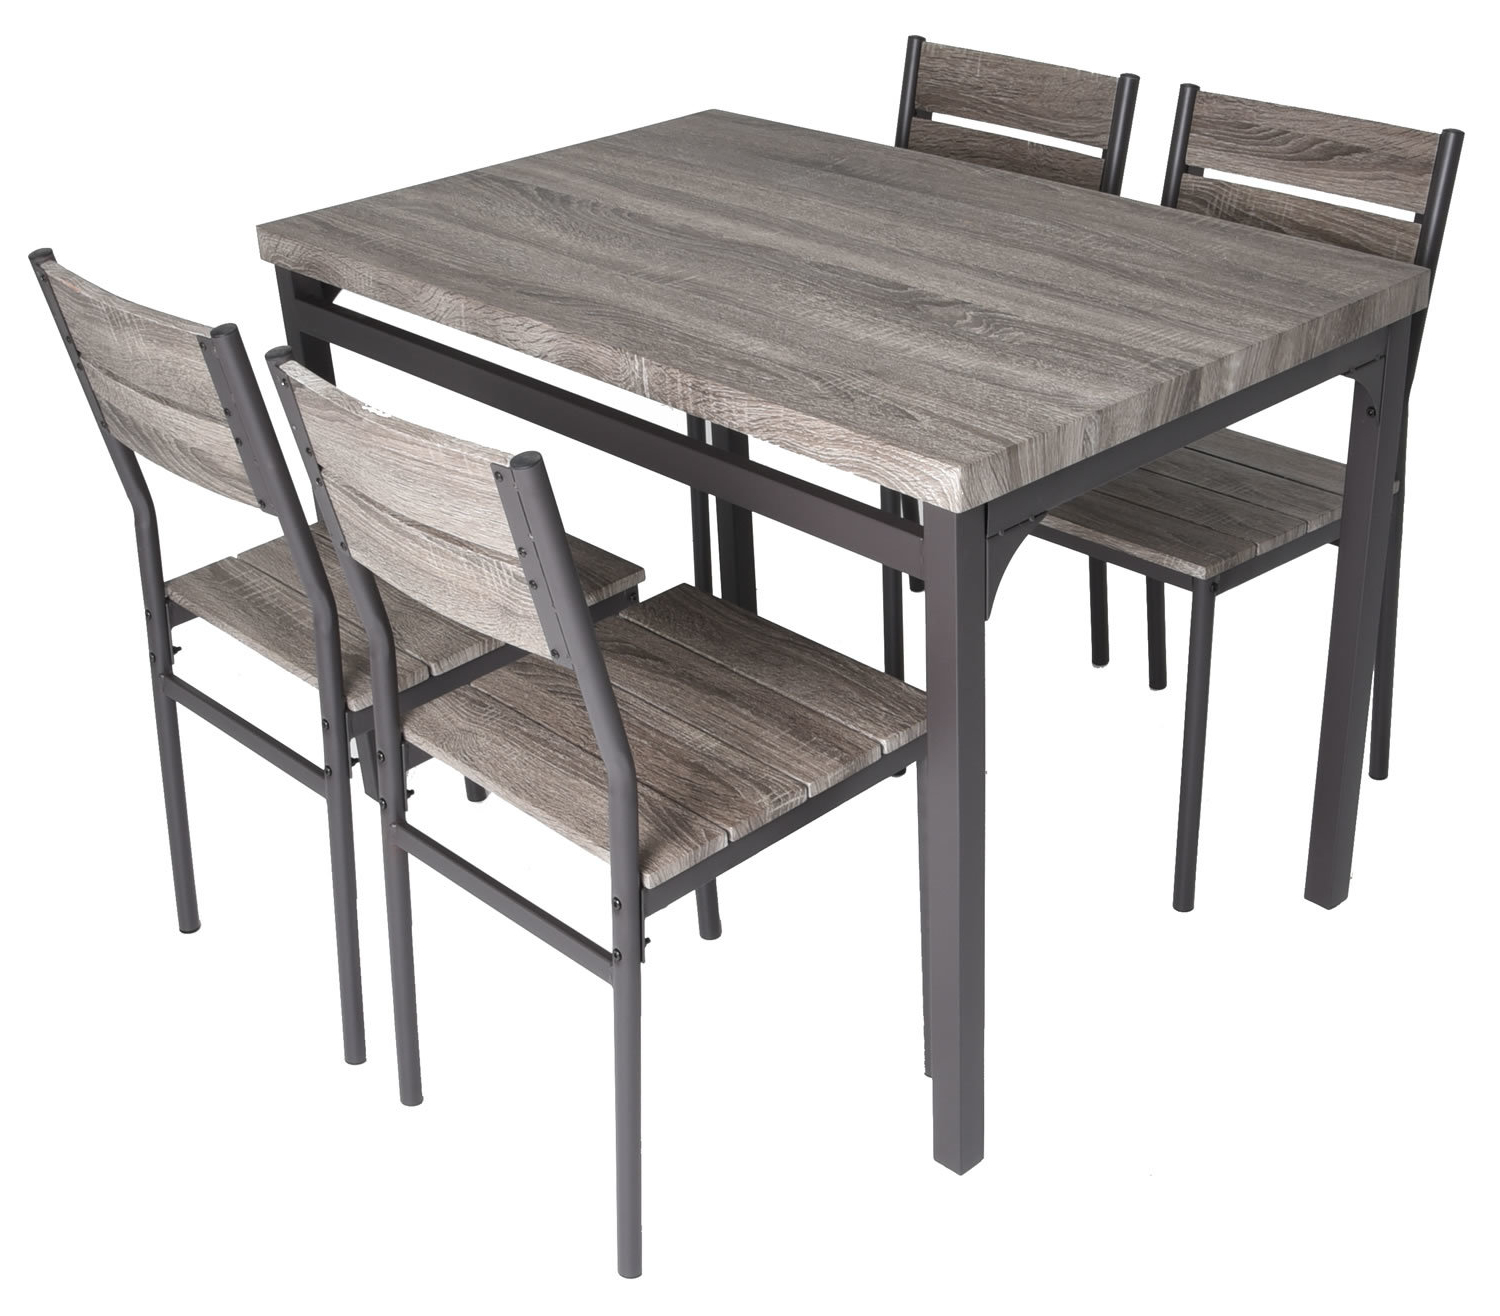 Conover 5 Piece Dining Sets Throughout Favorite Gracie Oaks Emmeline 5 Piece Breakfast Nook Dining Set & Reviews (View 12 of 25)